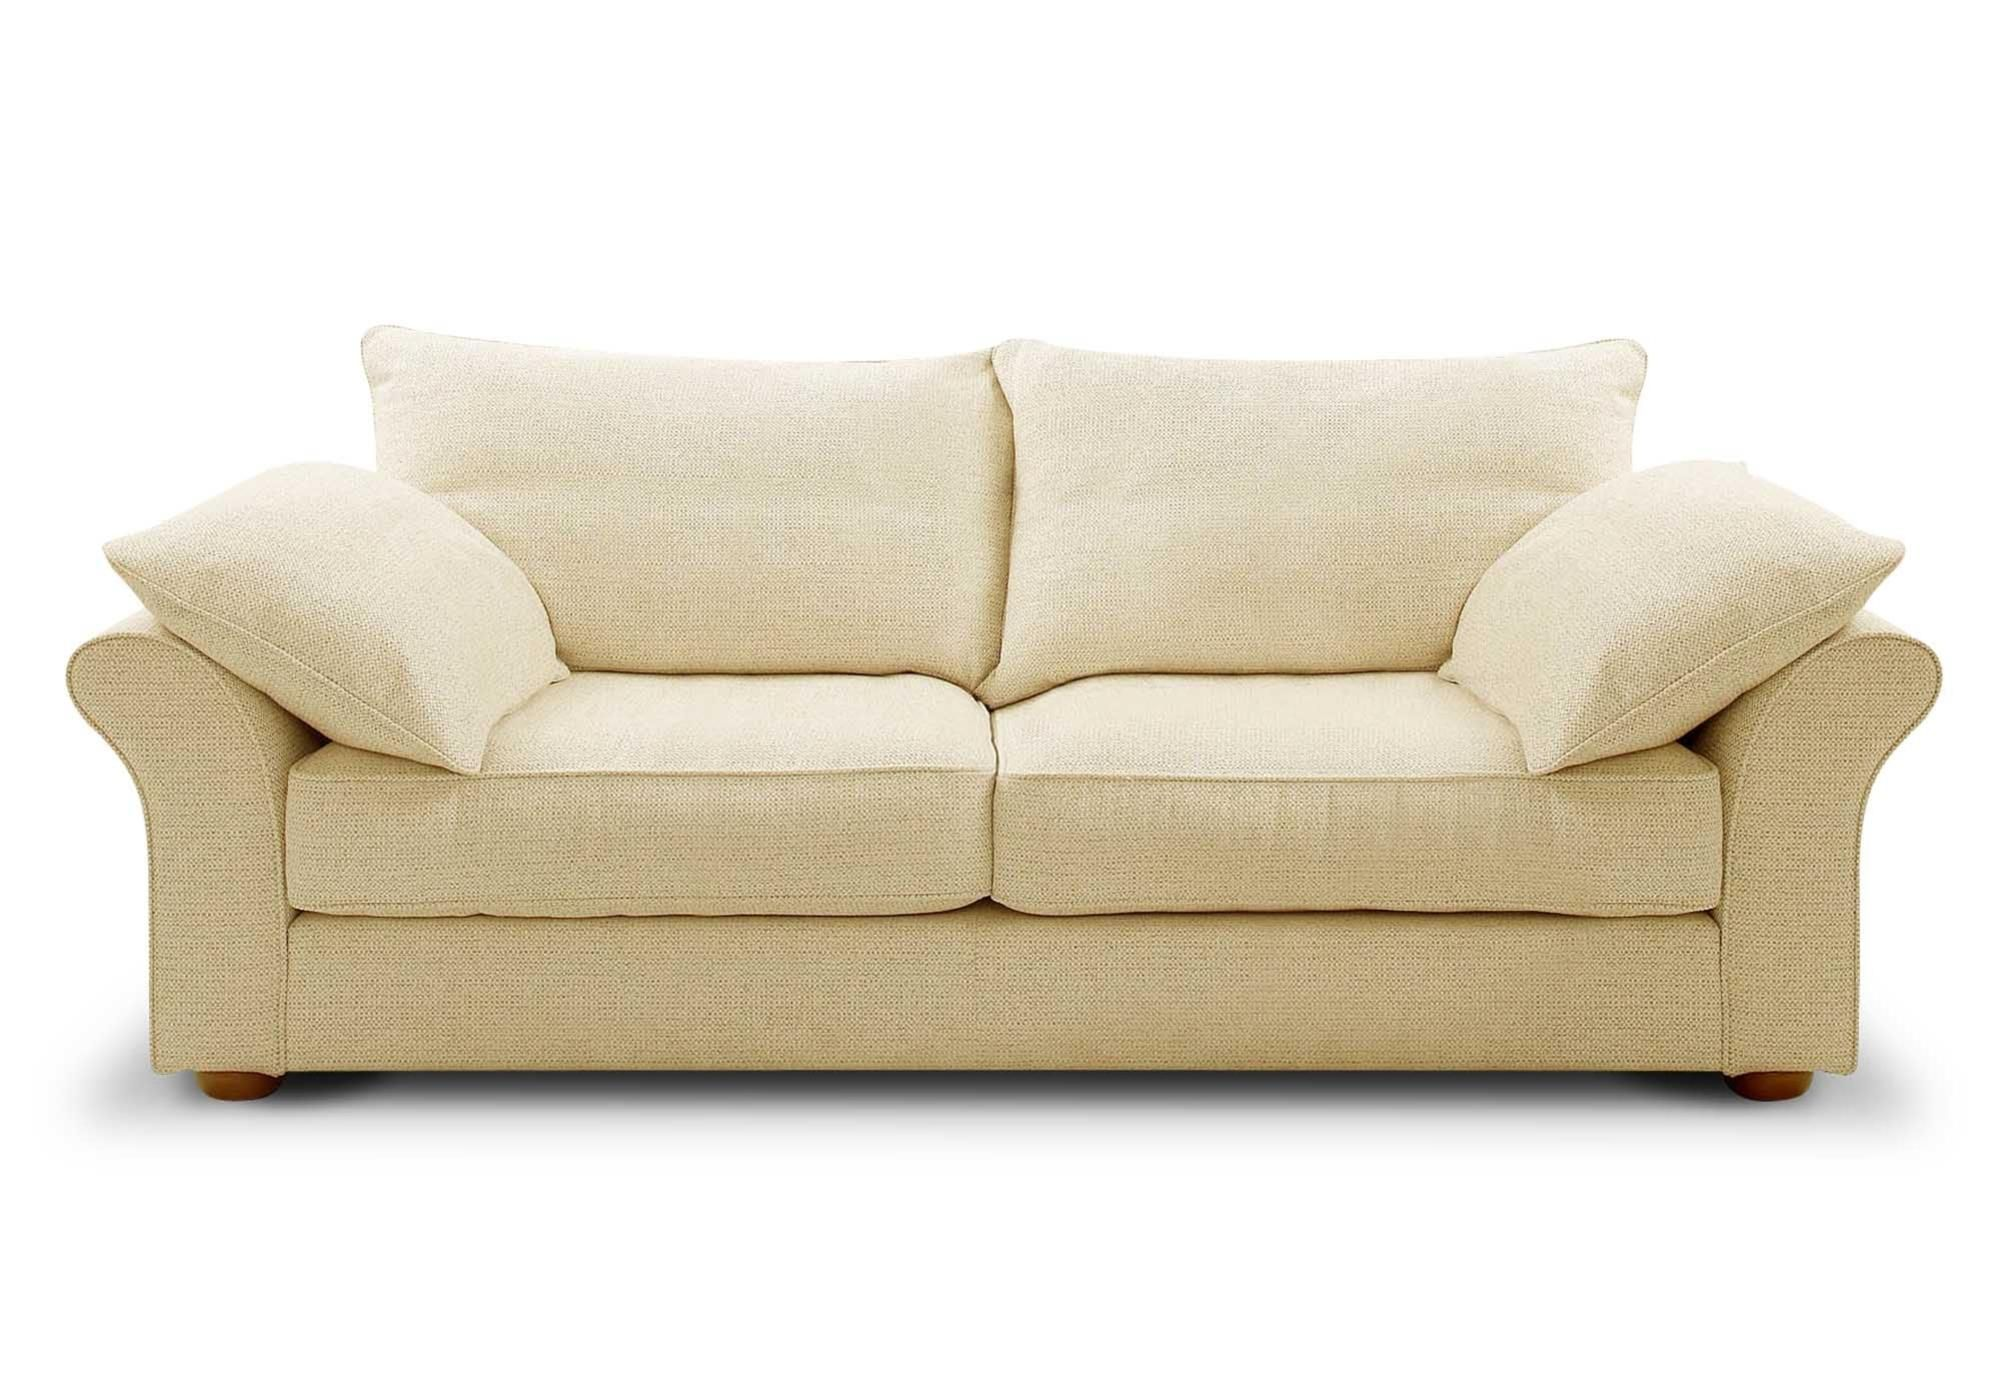 Craftsmanship Comfort And Elegance Are Synonymous With The Manufacturer Collins Hayes So It Is No Wonde Furniture Village Leather Sofa Furniture Furniture